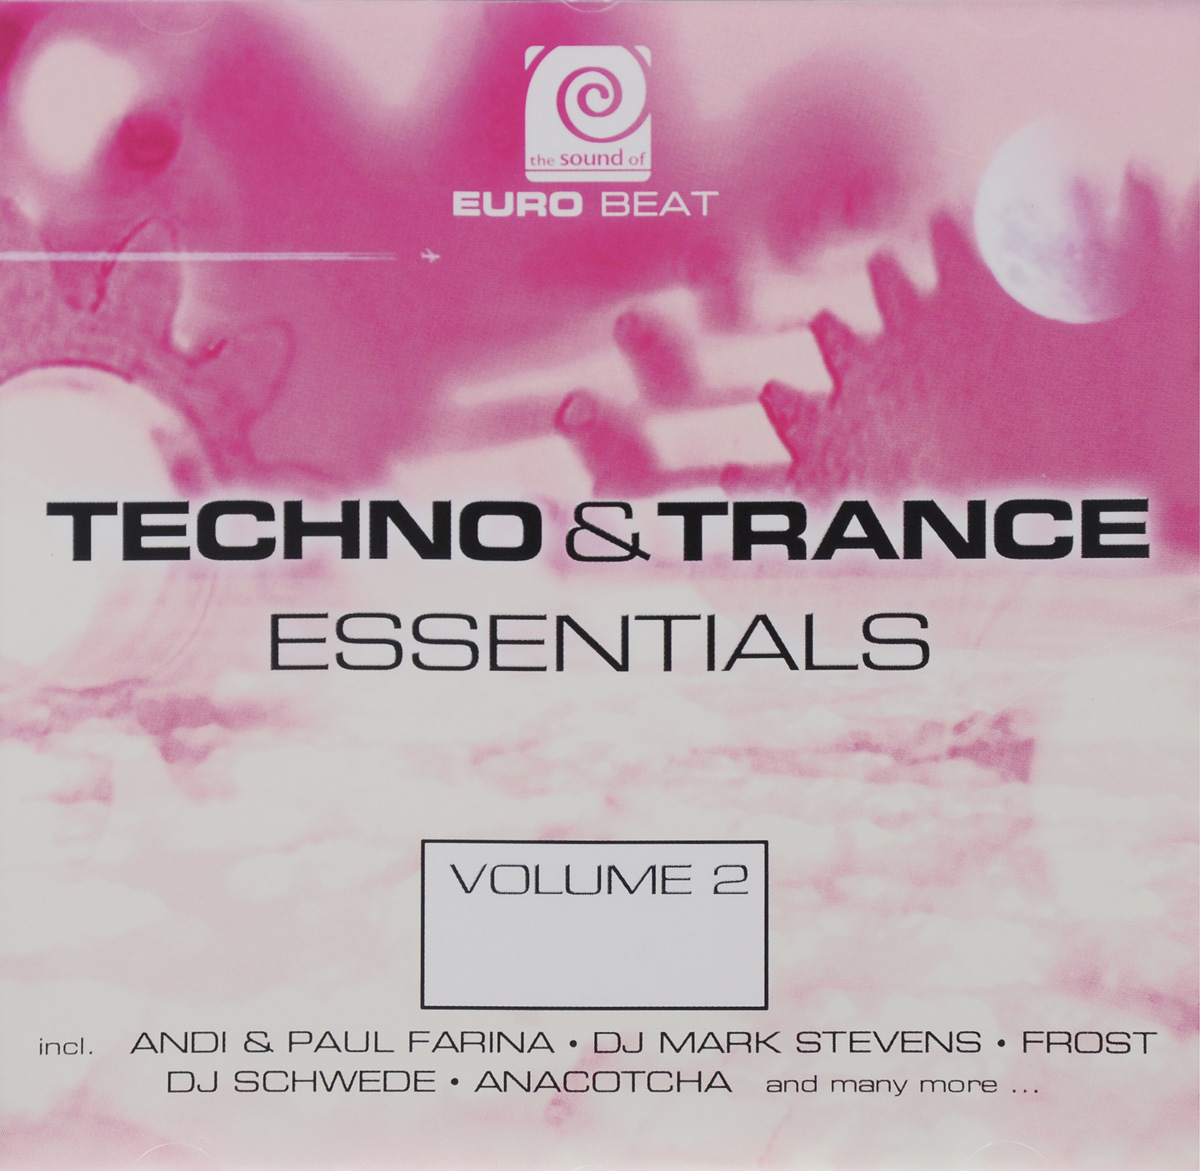 Euro Beat - Techno & Trance Essentials Volume 2